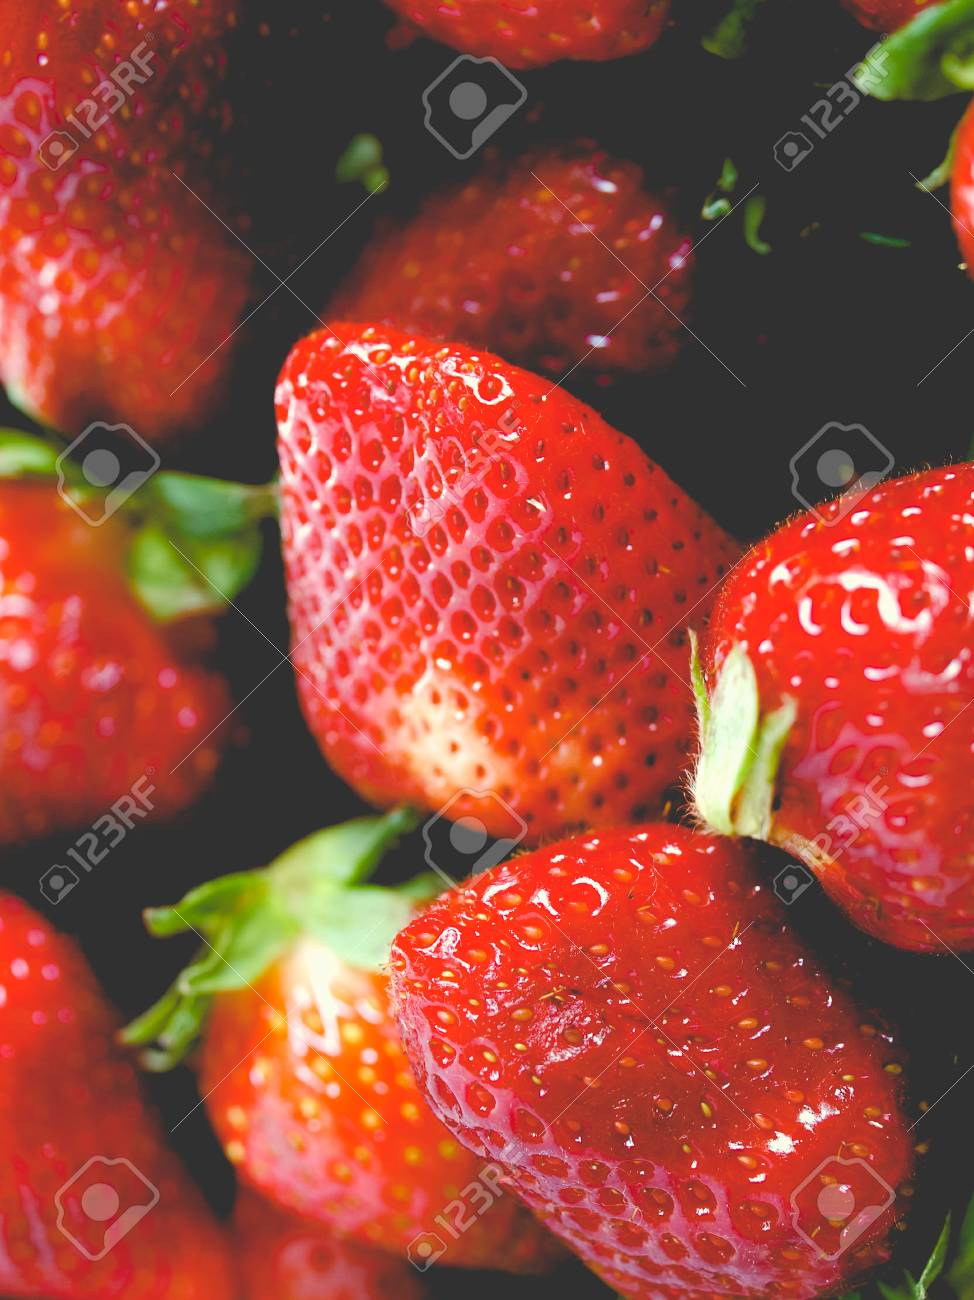 What is useful strawberries 92